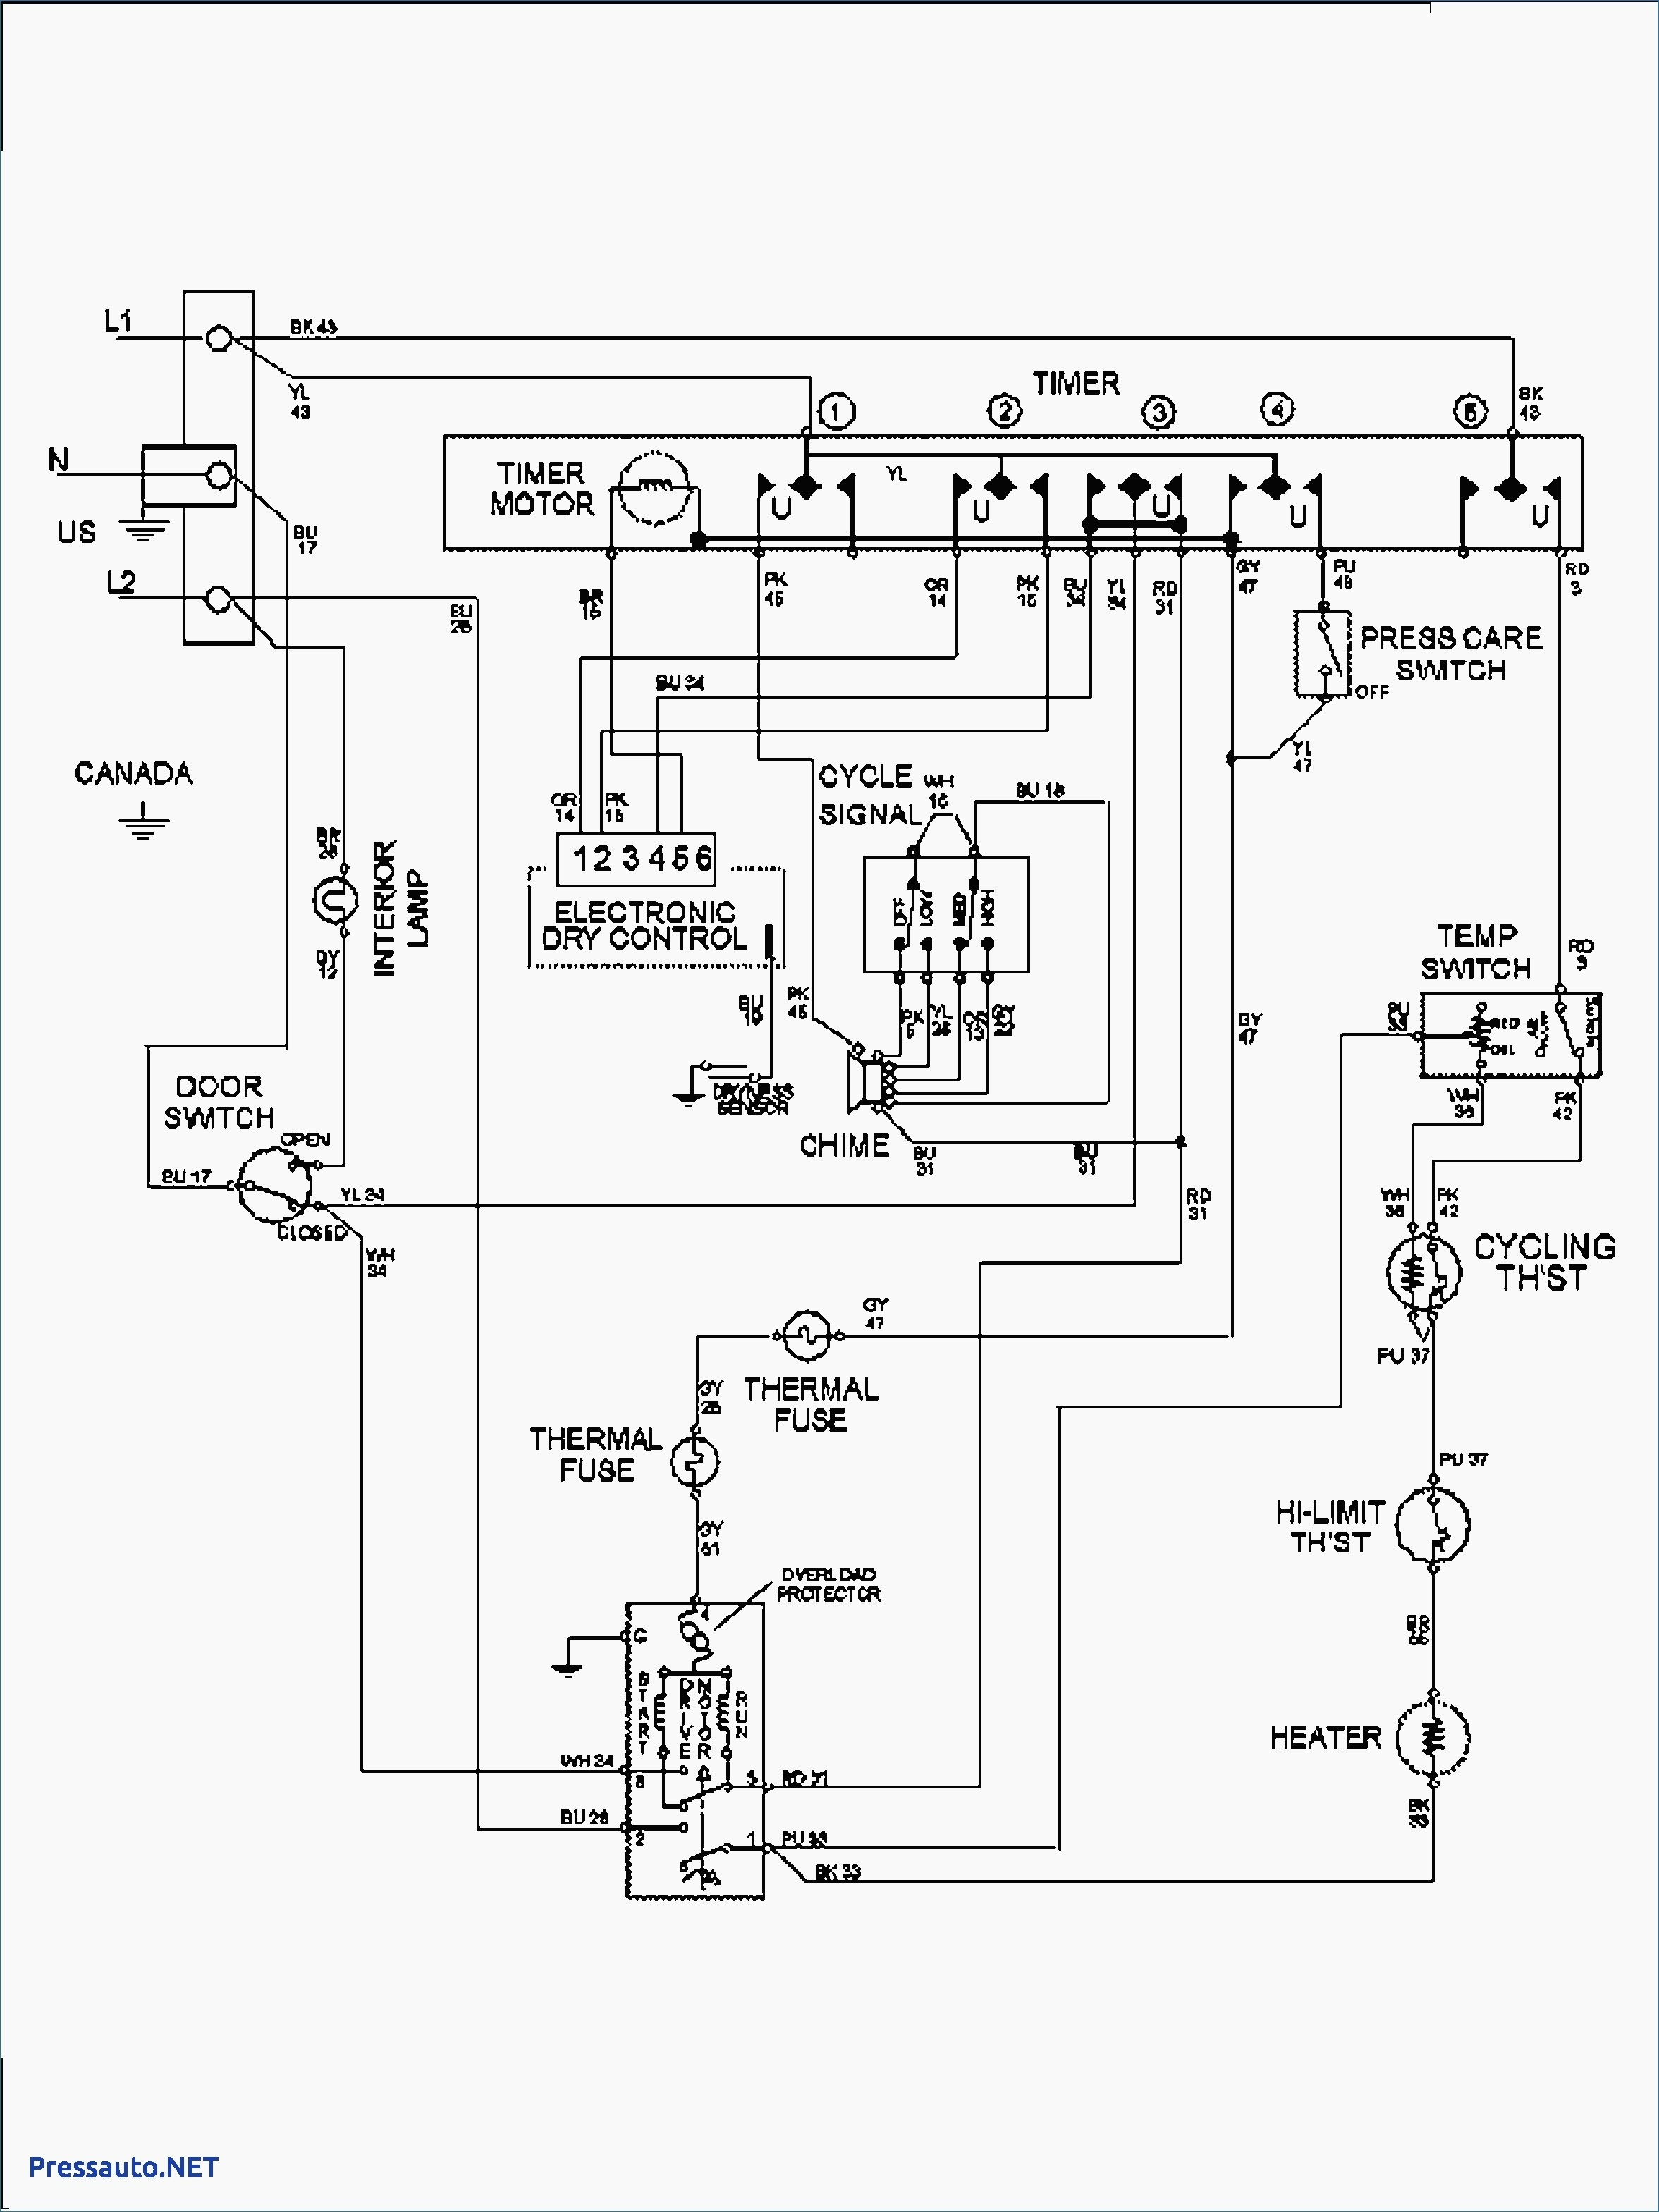 whirlpool estate dryer wiring diagram